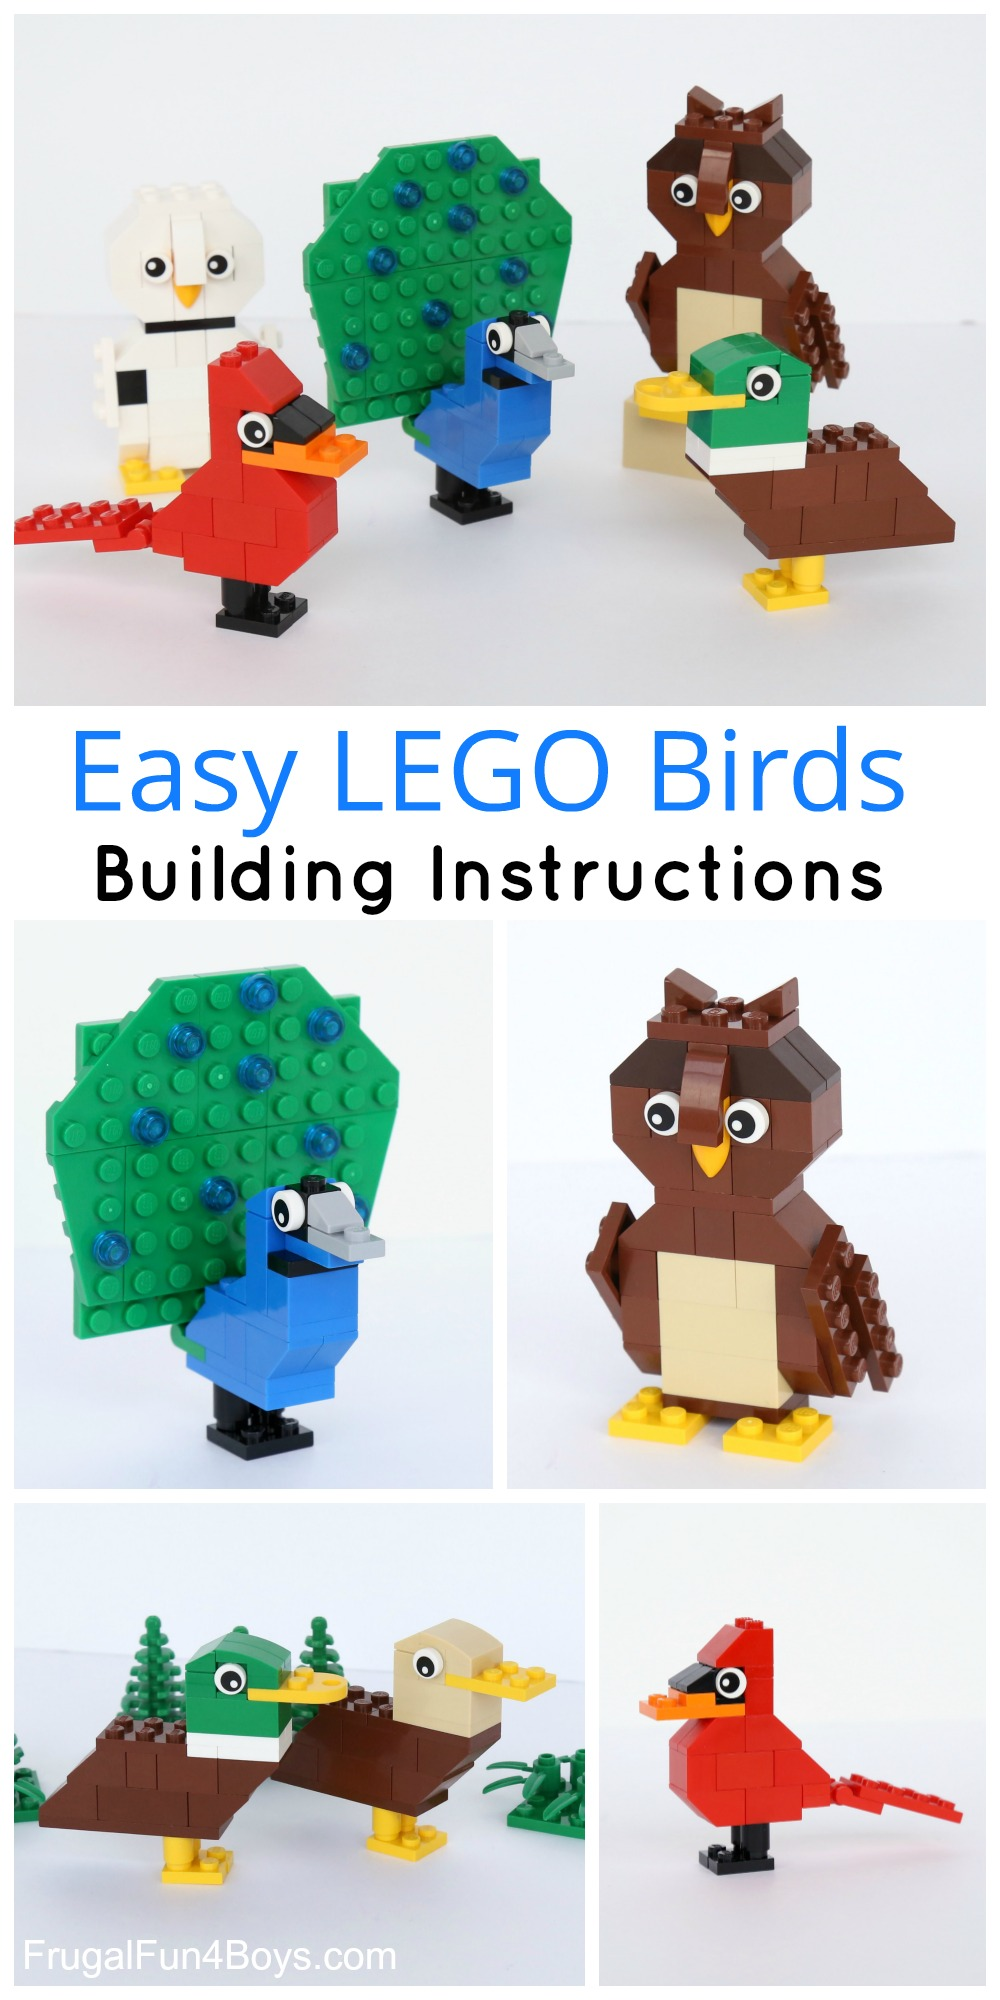 Simple brick birds building instructions here are some fun birds to build with lego bricks this is a great building project for beginners weve got designs for a couple of owls some ducks solutioingenieria Images